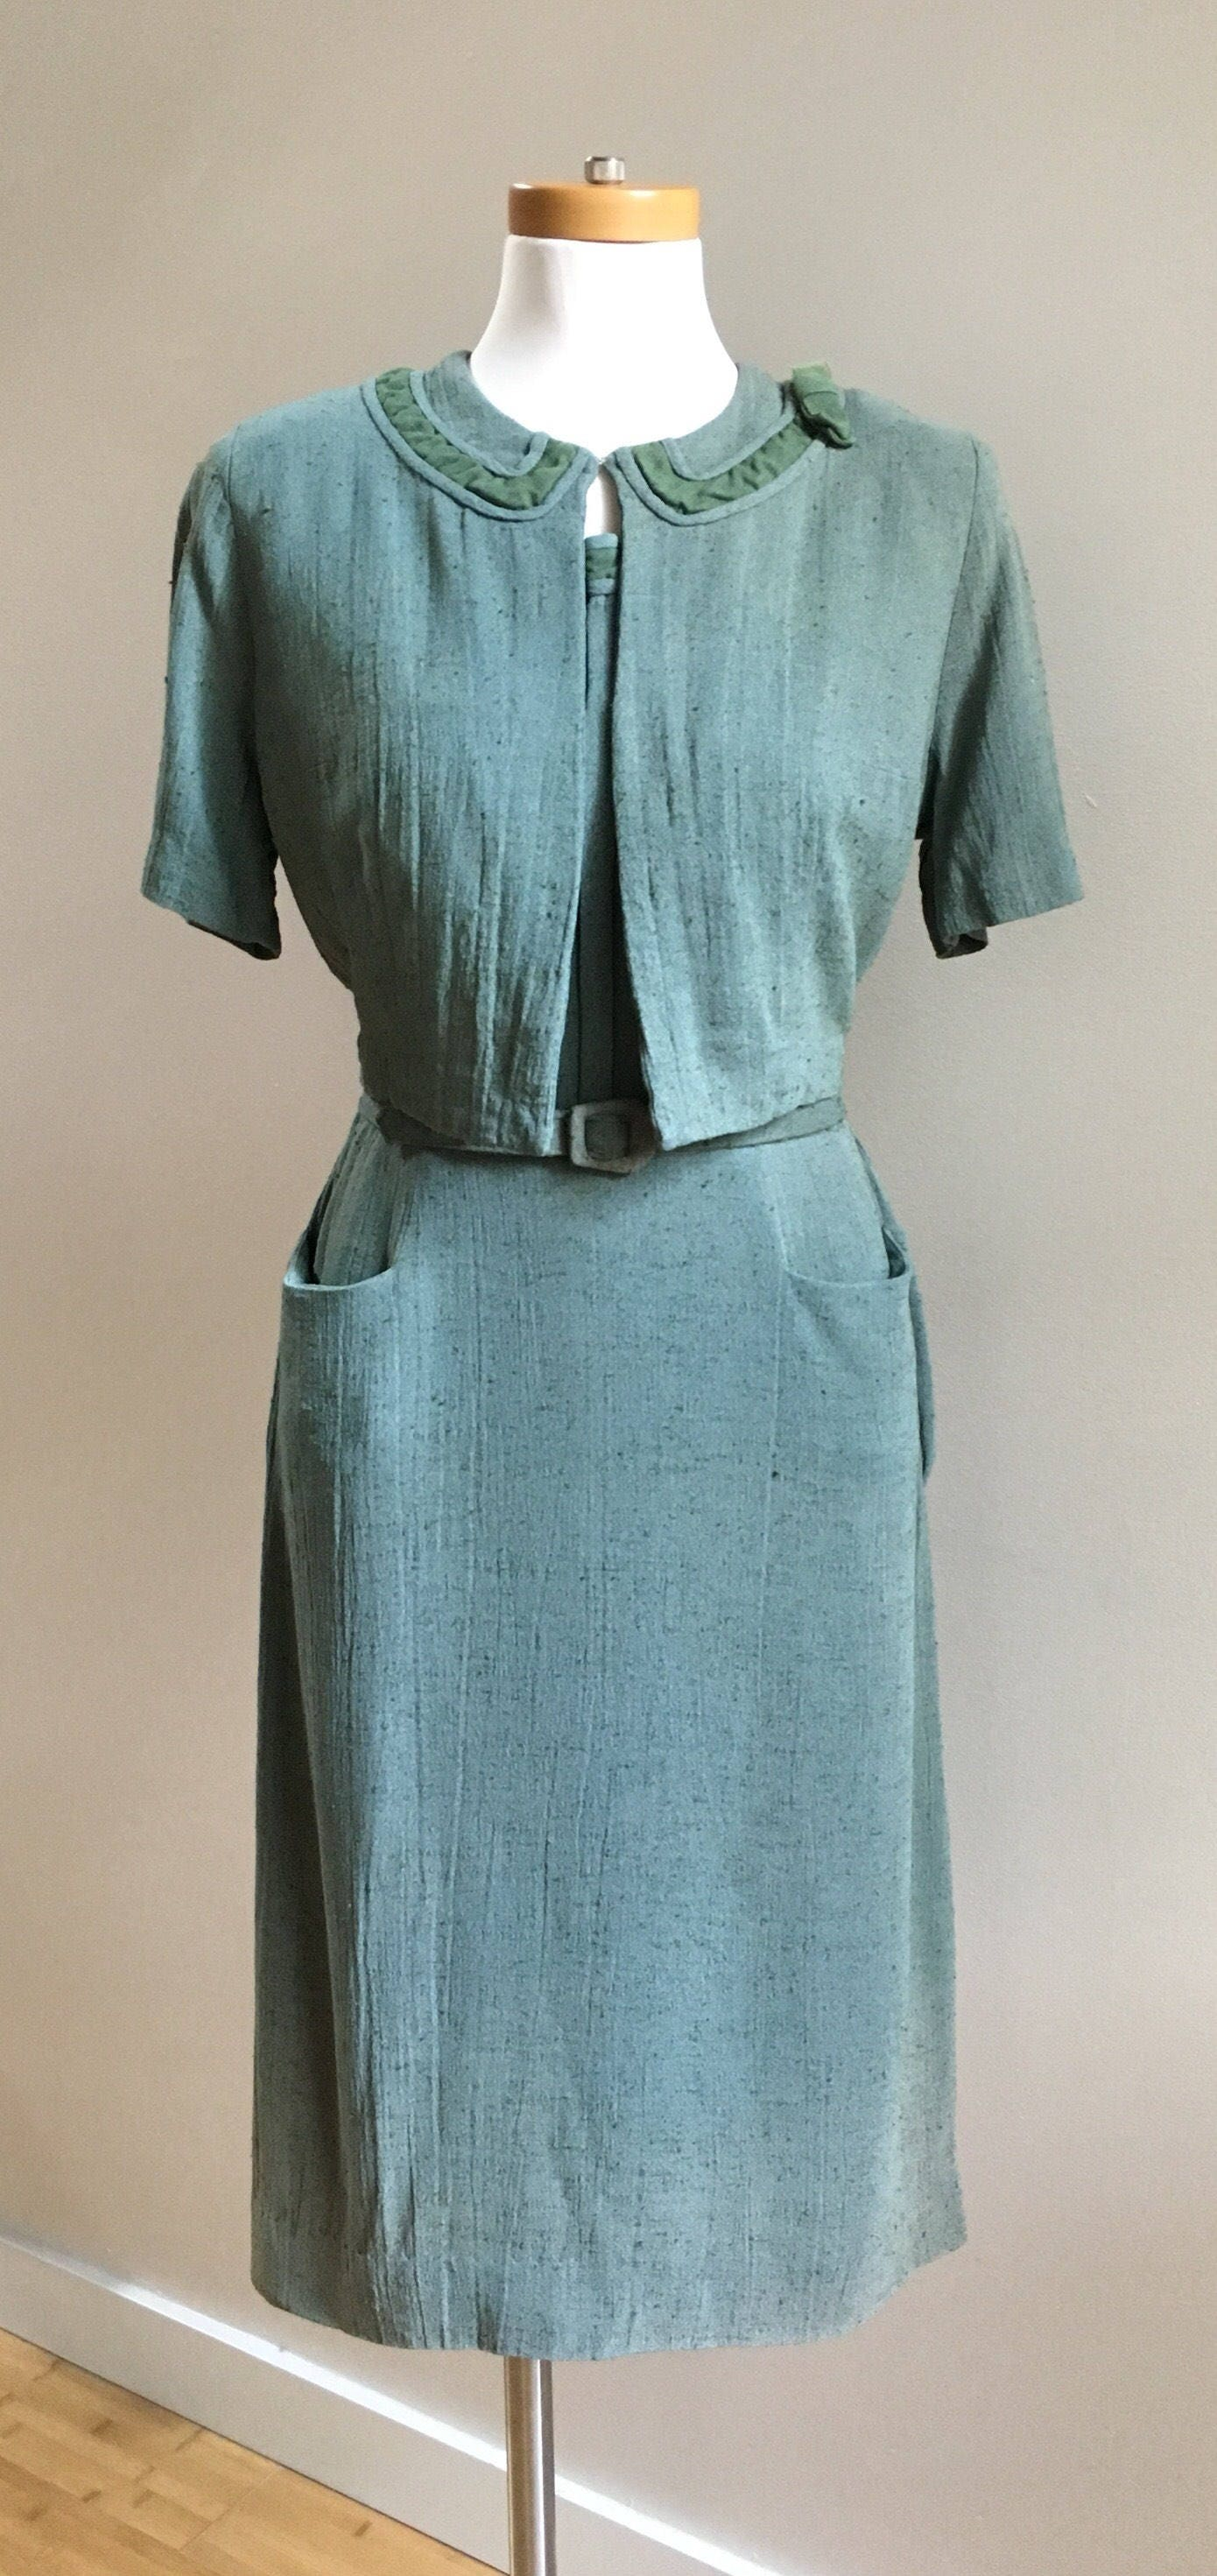 Vintage 1950s Pinup Green Teal Linen Cotton Fall